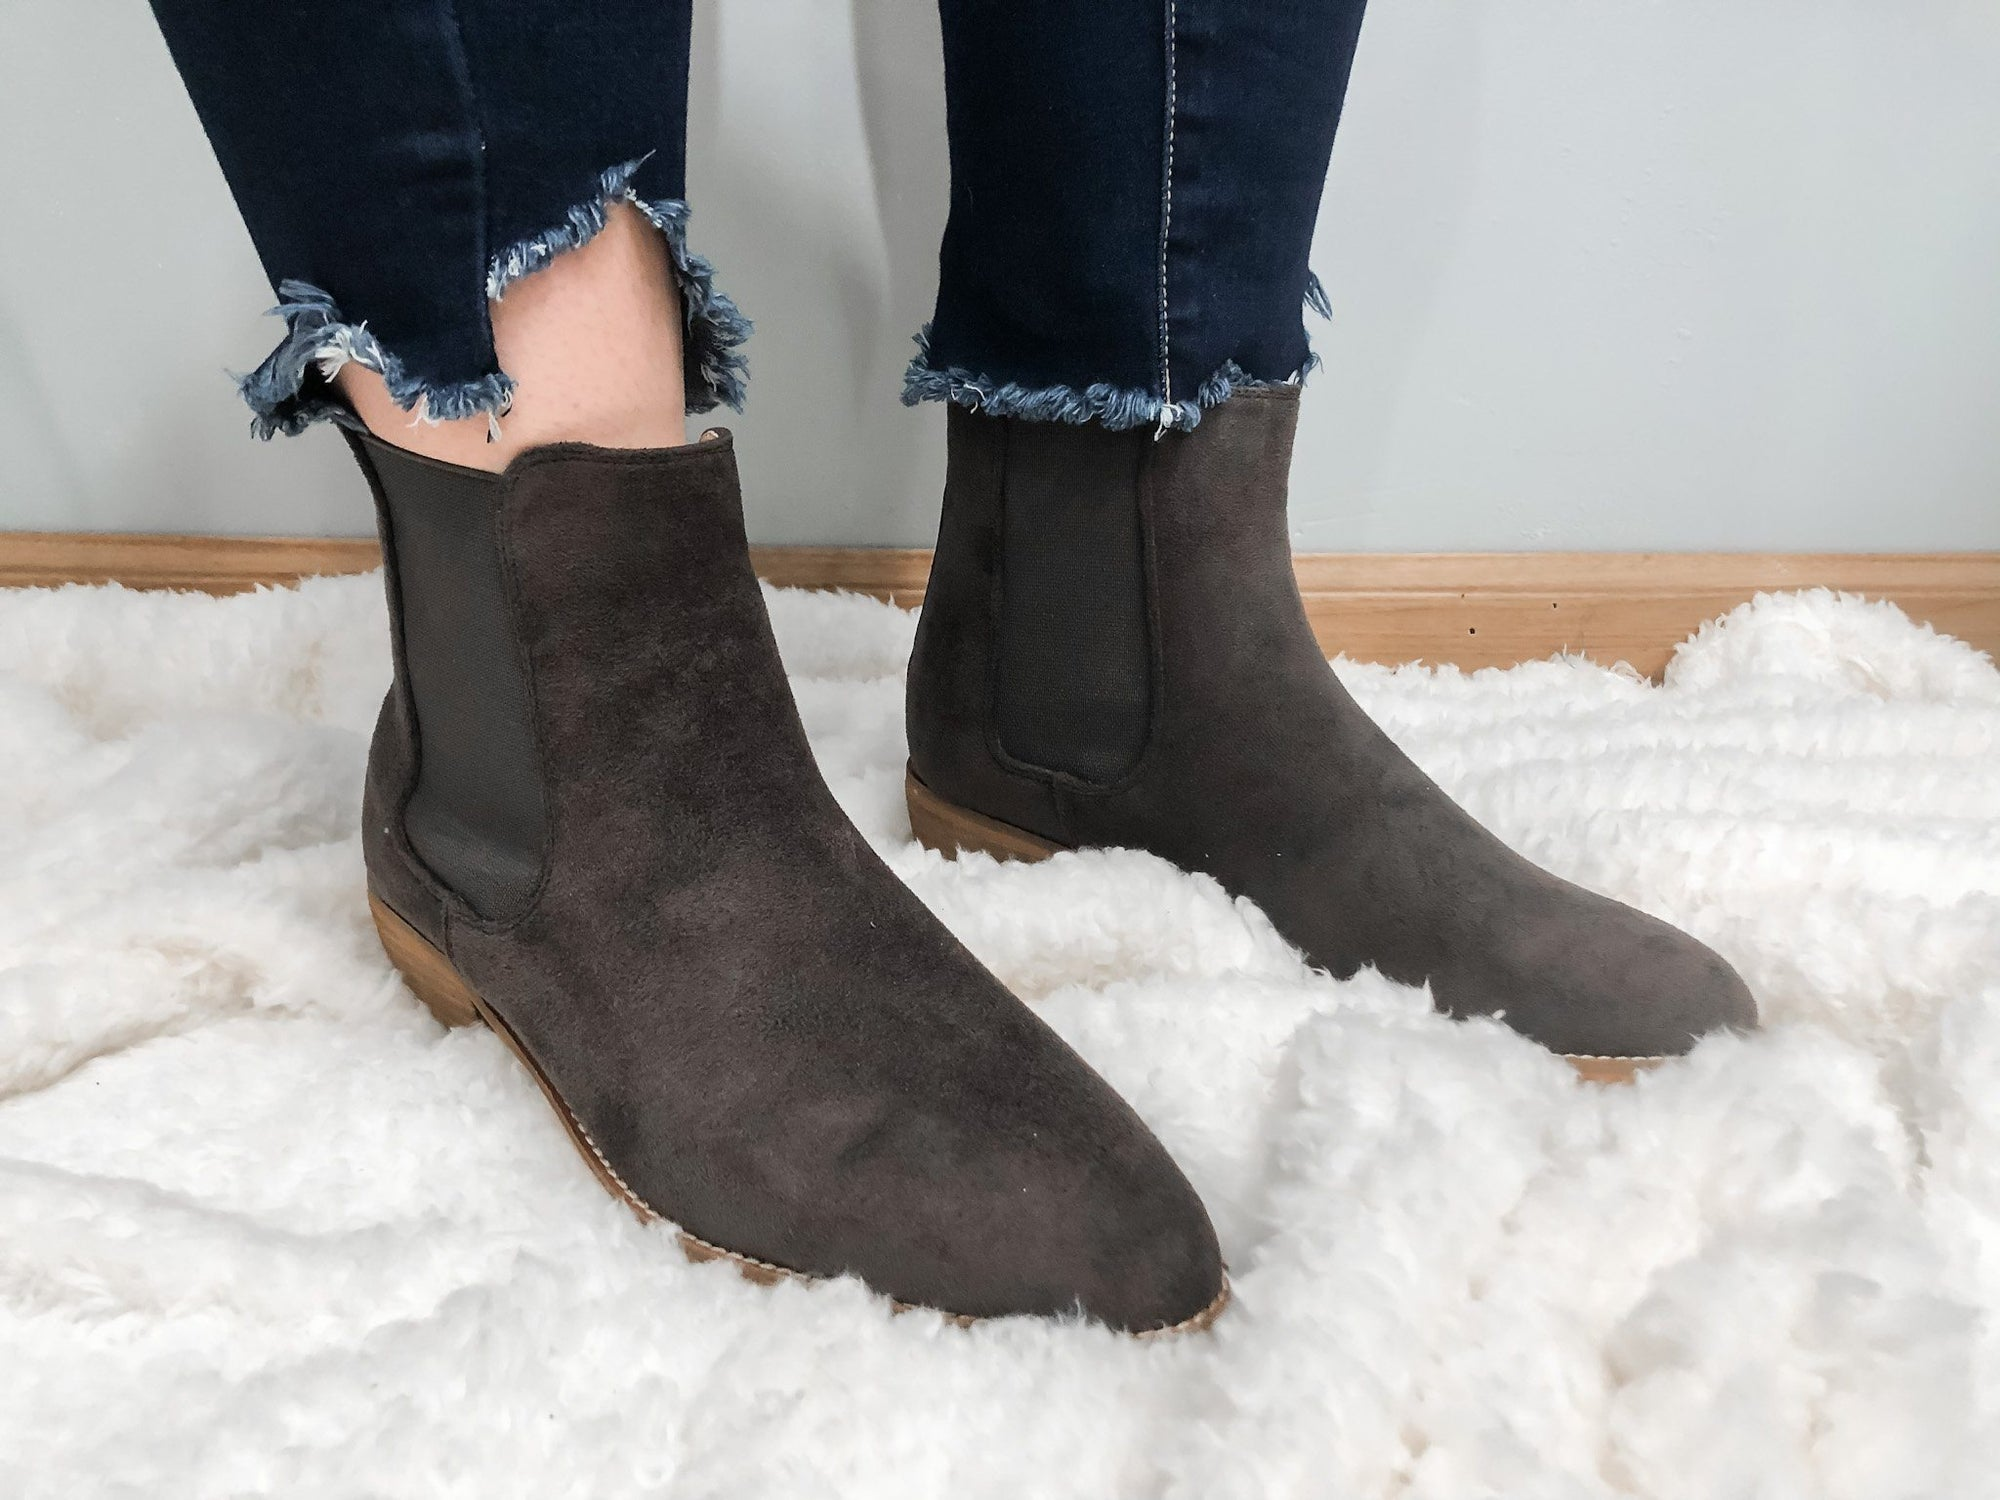 The Chase Charcoal Grey Suede Bootie Shoes Mars Sky Shoes